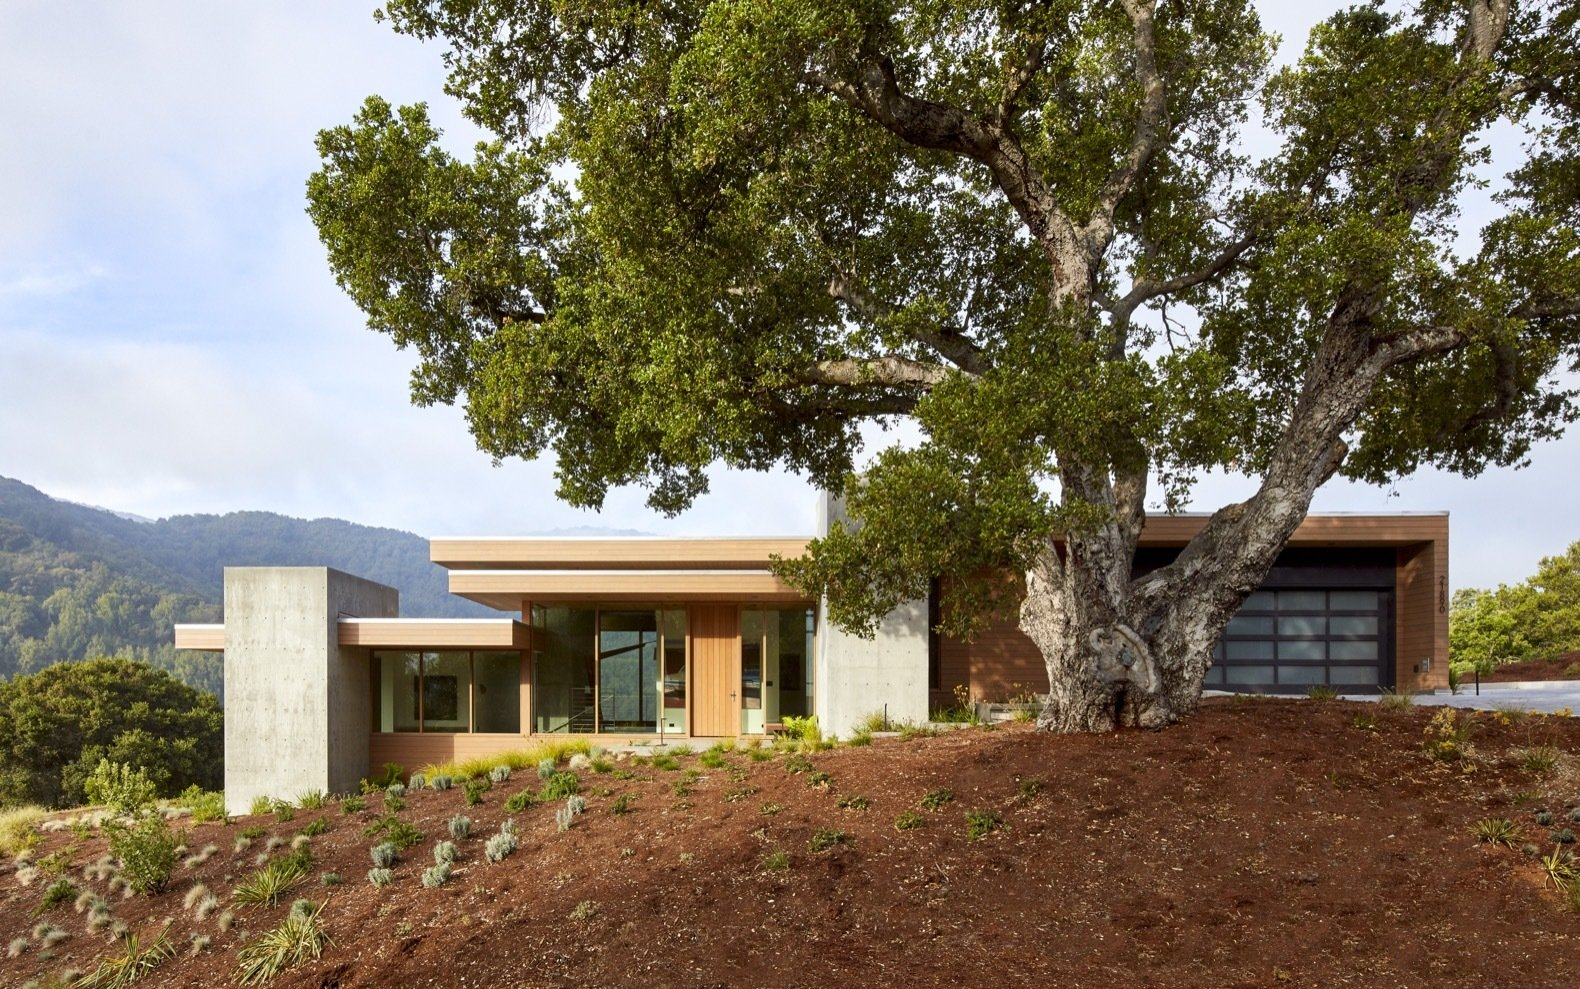 A Californian Home Gently Steps Down on an Oak-Studded Landscape